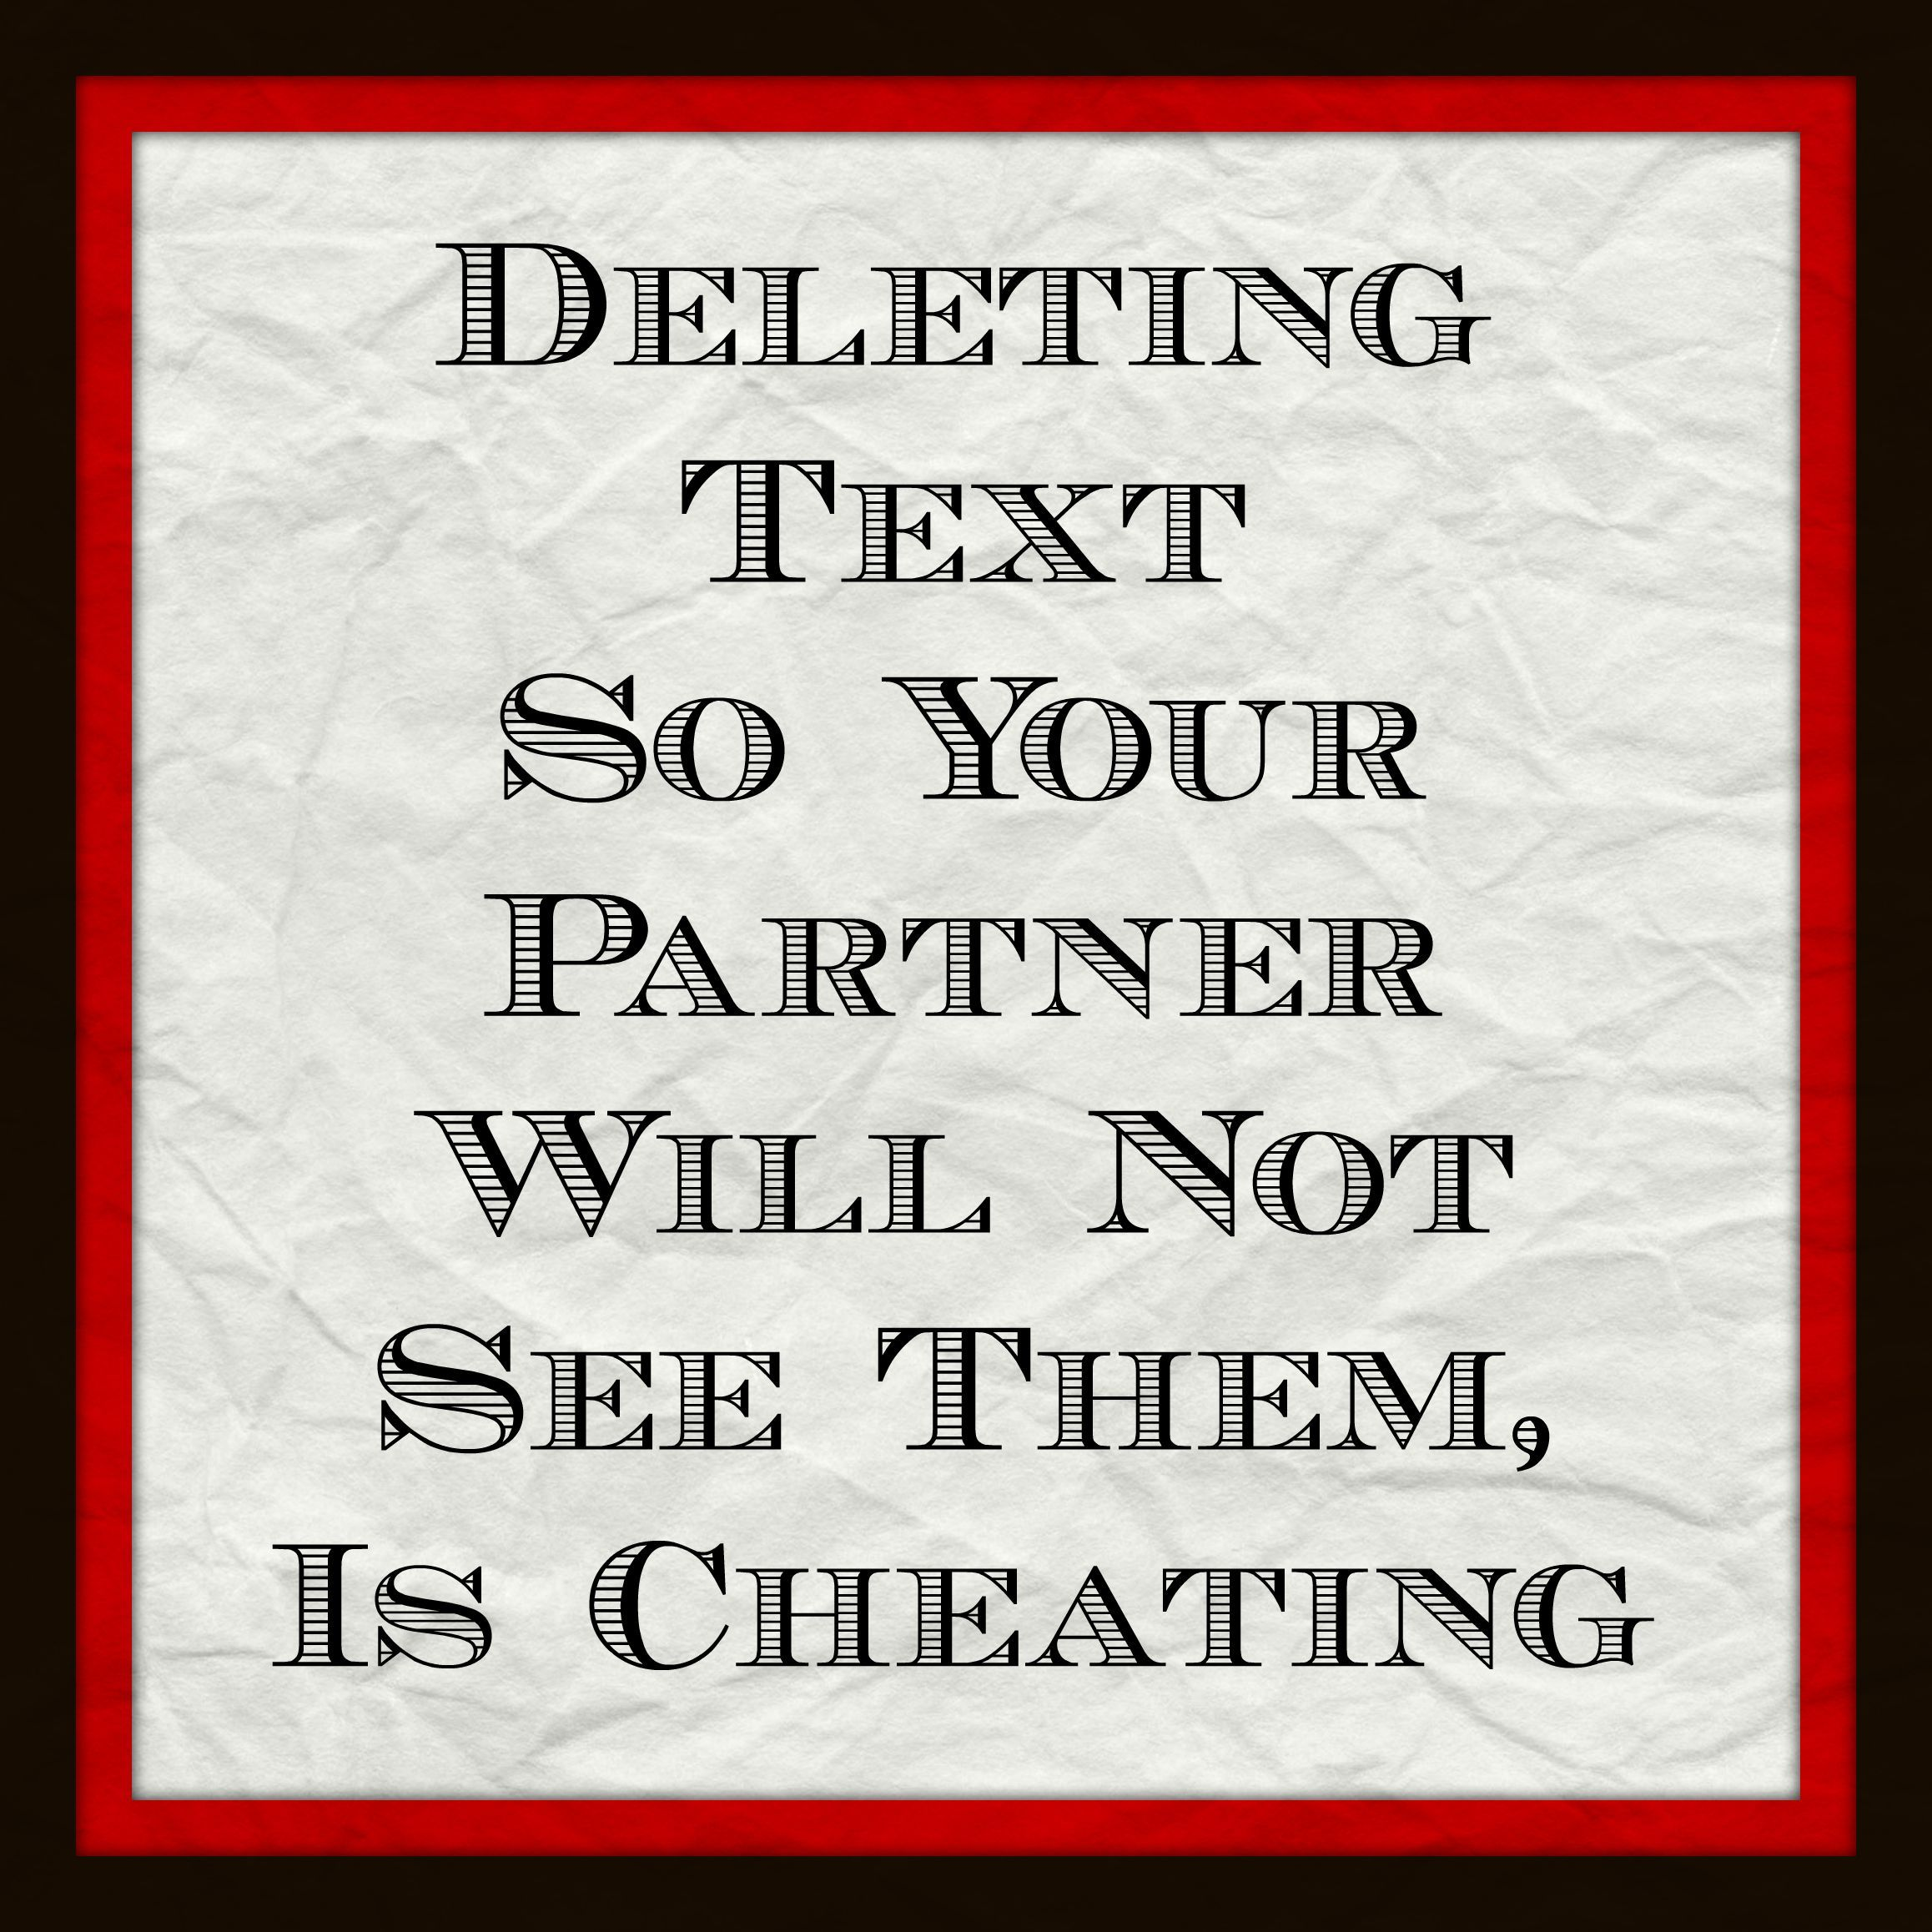 Is Your Partner Or Spouse Deleting Text So You Don't See